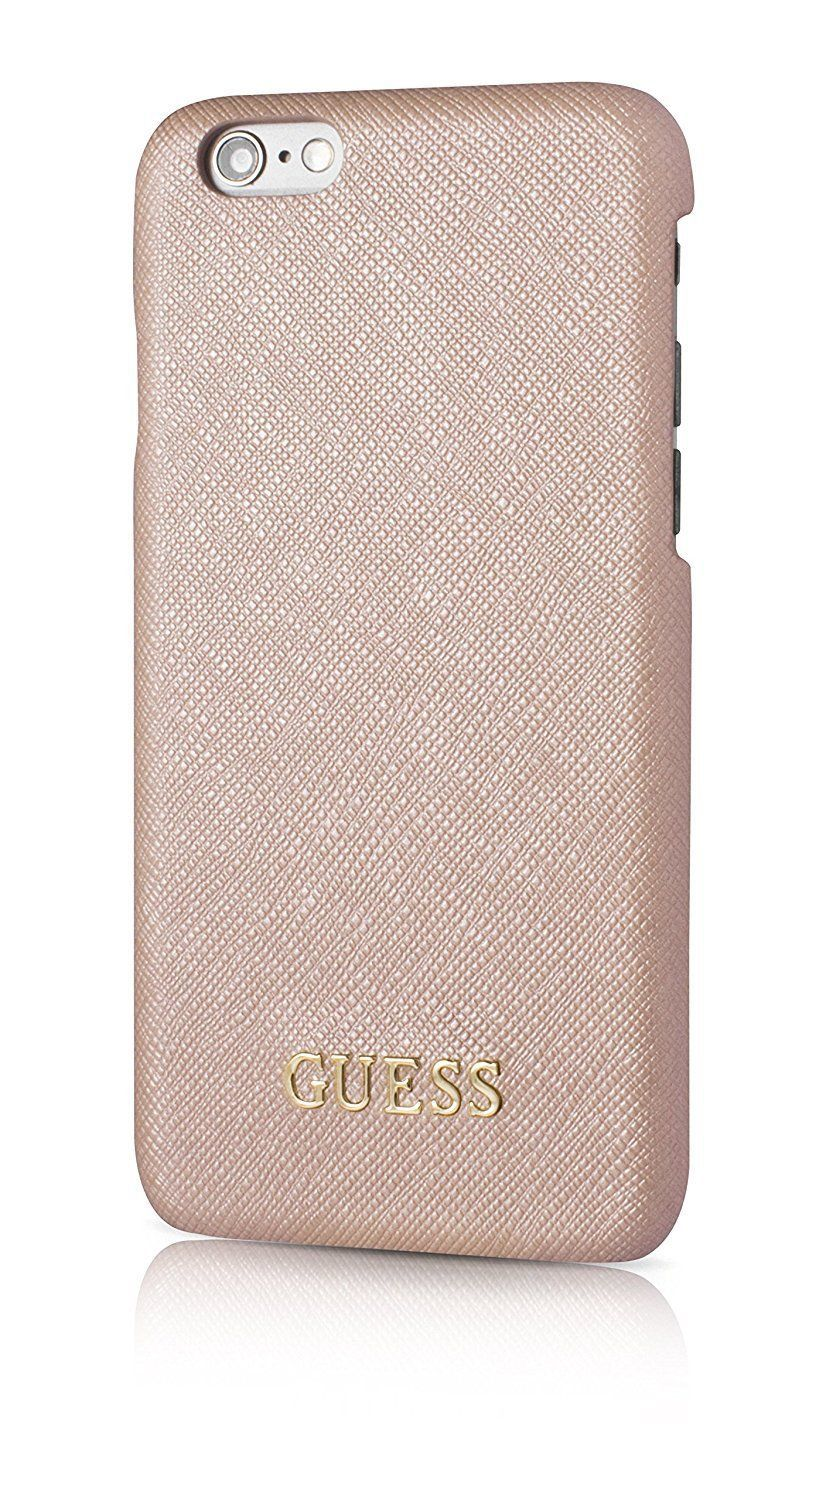 premium selection 3c8bb 0bb05 Guess Saffiano Collection Cover, Guess Stuff & Style for iPhone 6 (S ...